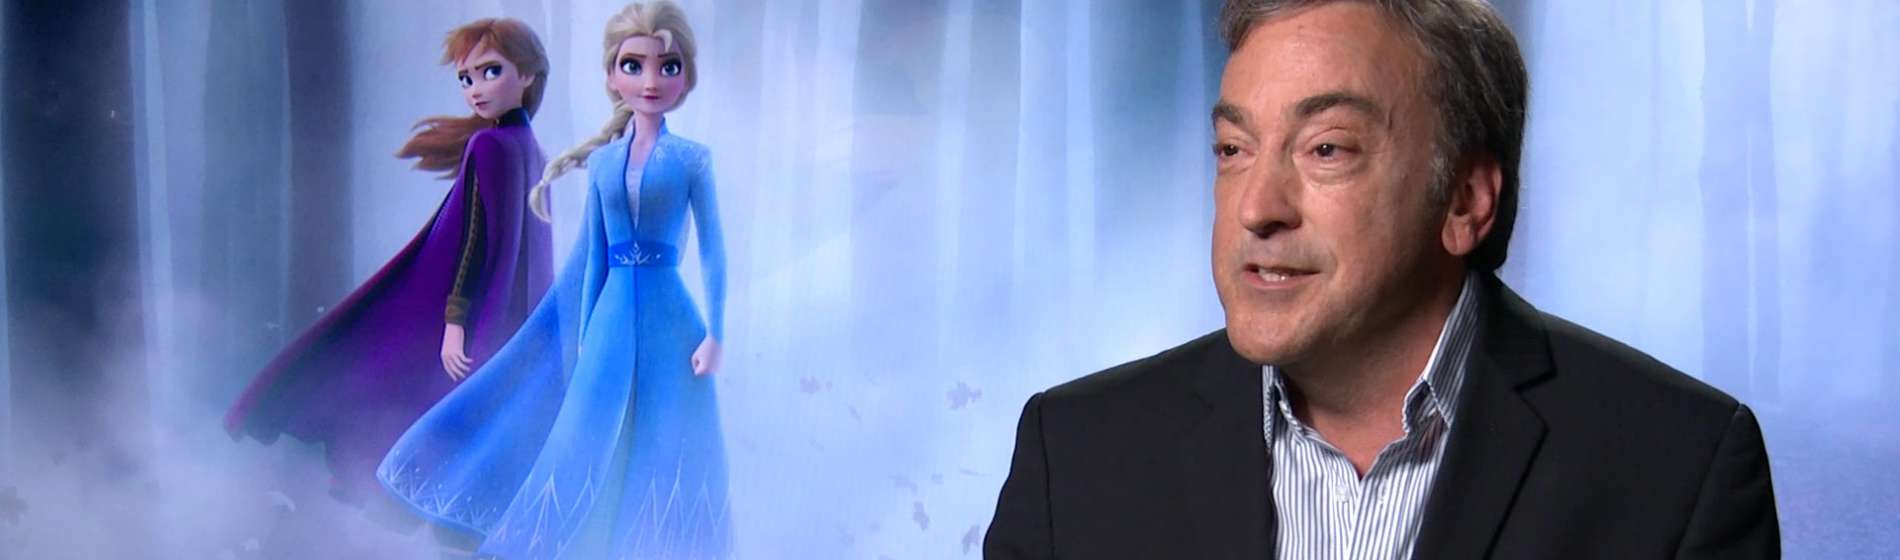 Frozen II Peter Del Vecho Interview Featured